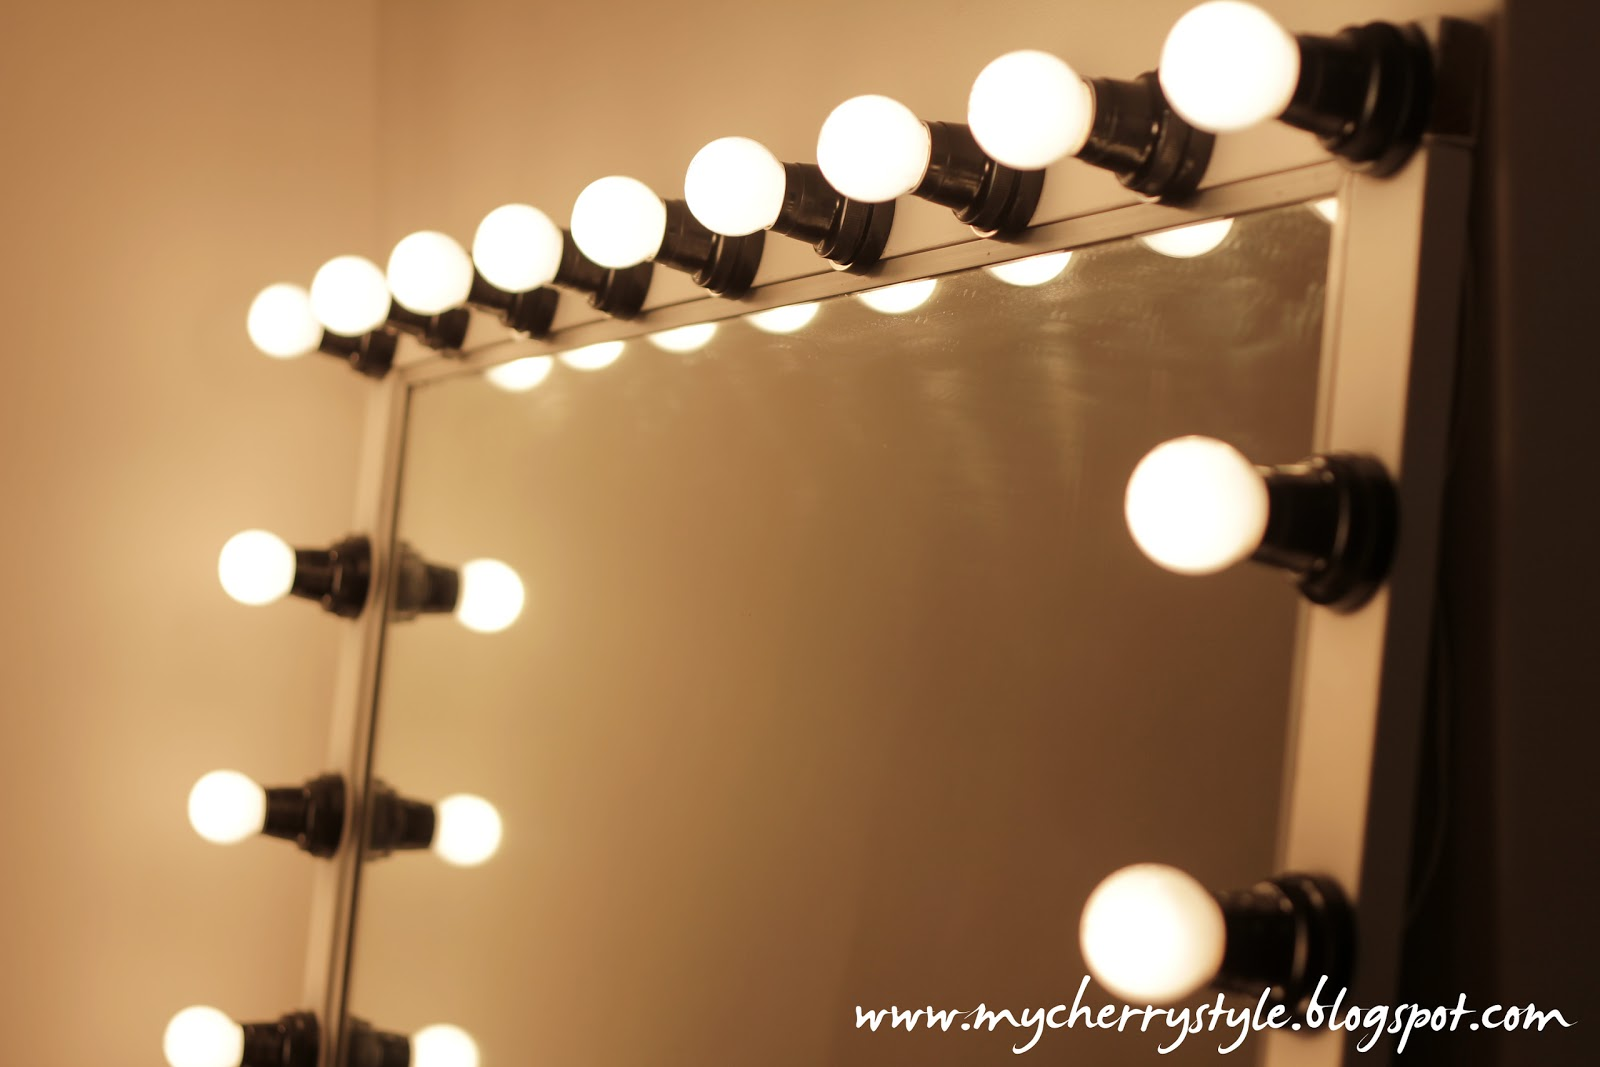 Diy hollywood style mirror with lights tutorial from scratch for diy hollywood style mirror with lights tutorial from scratch for real my cherry style mozeypictures